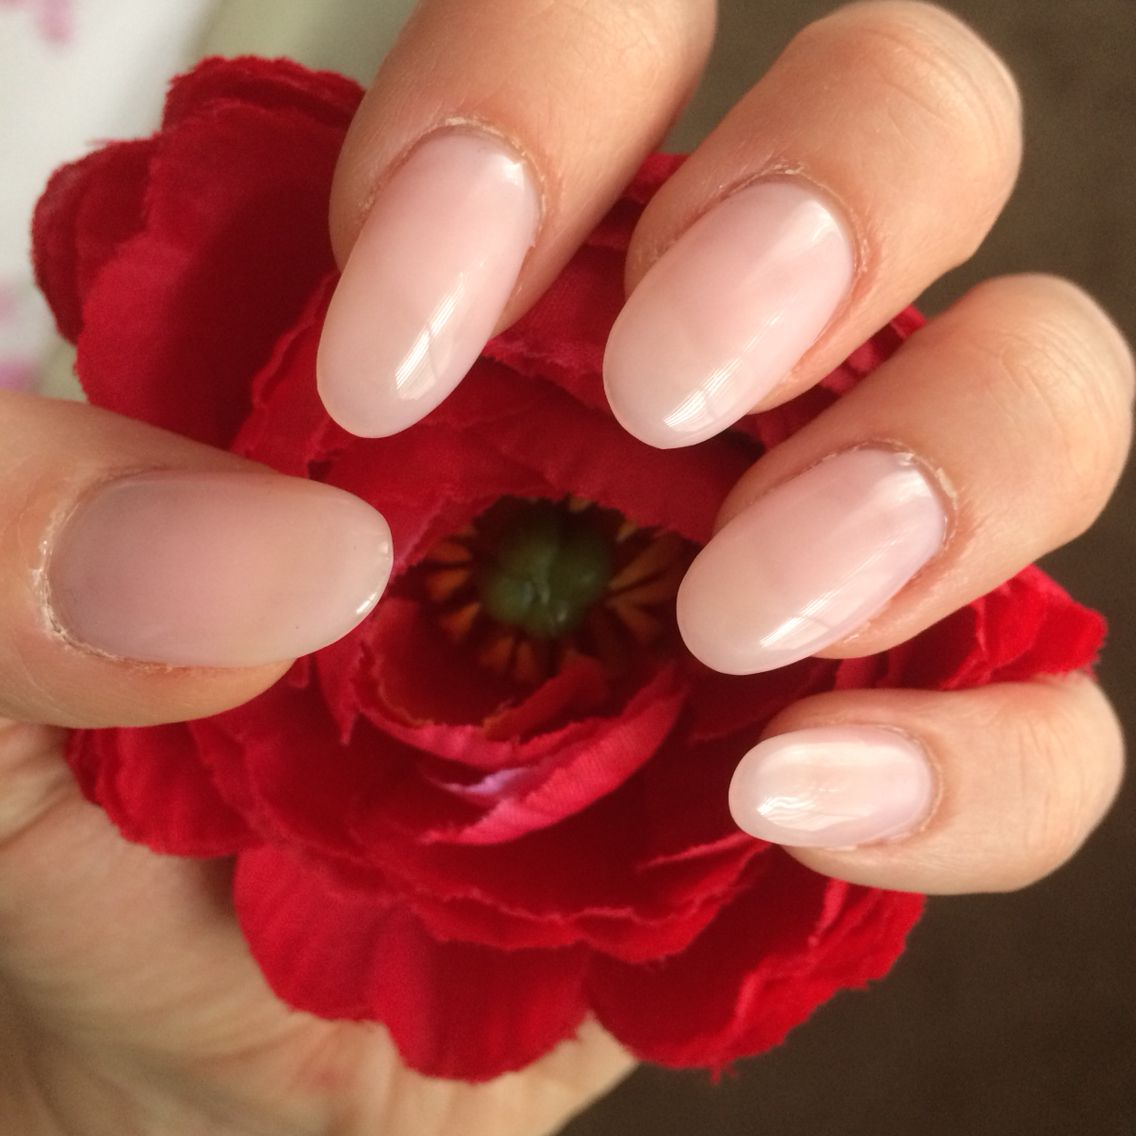 Natural, neutral, nude, light pink, round, oval, gel, shellac ...